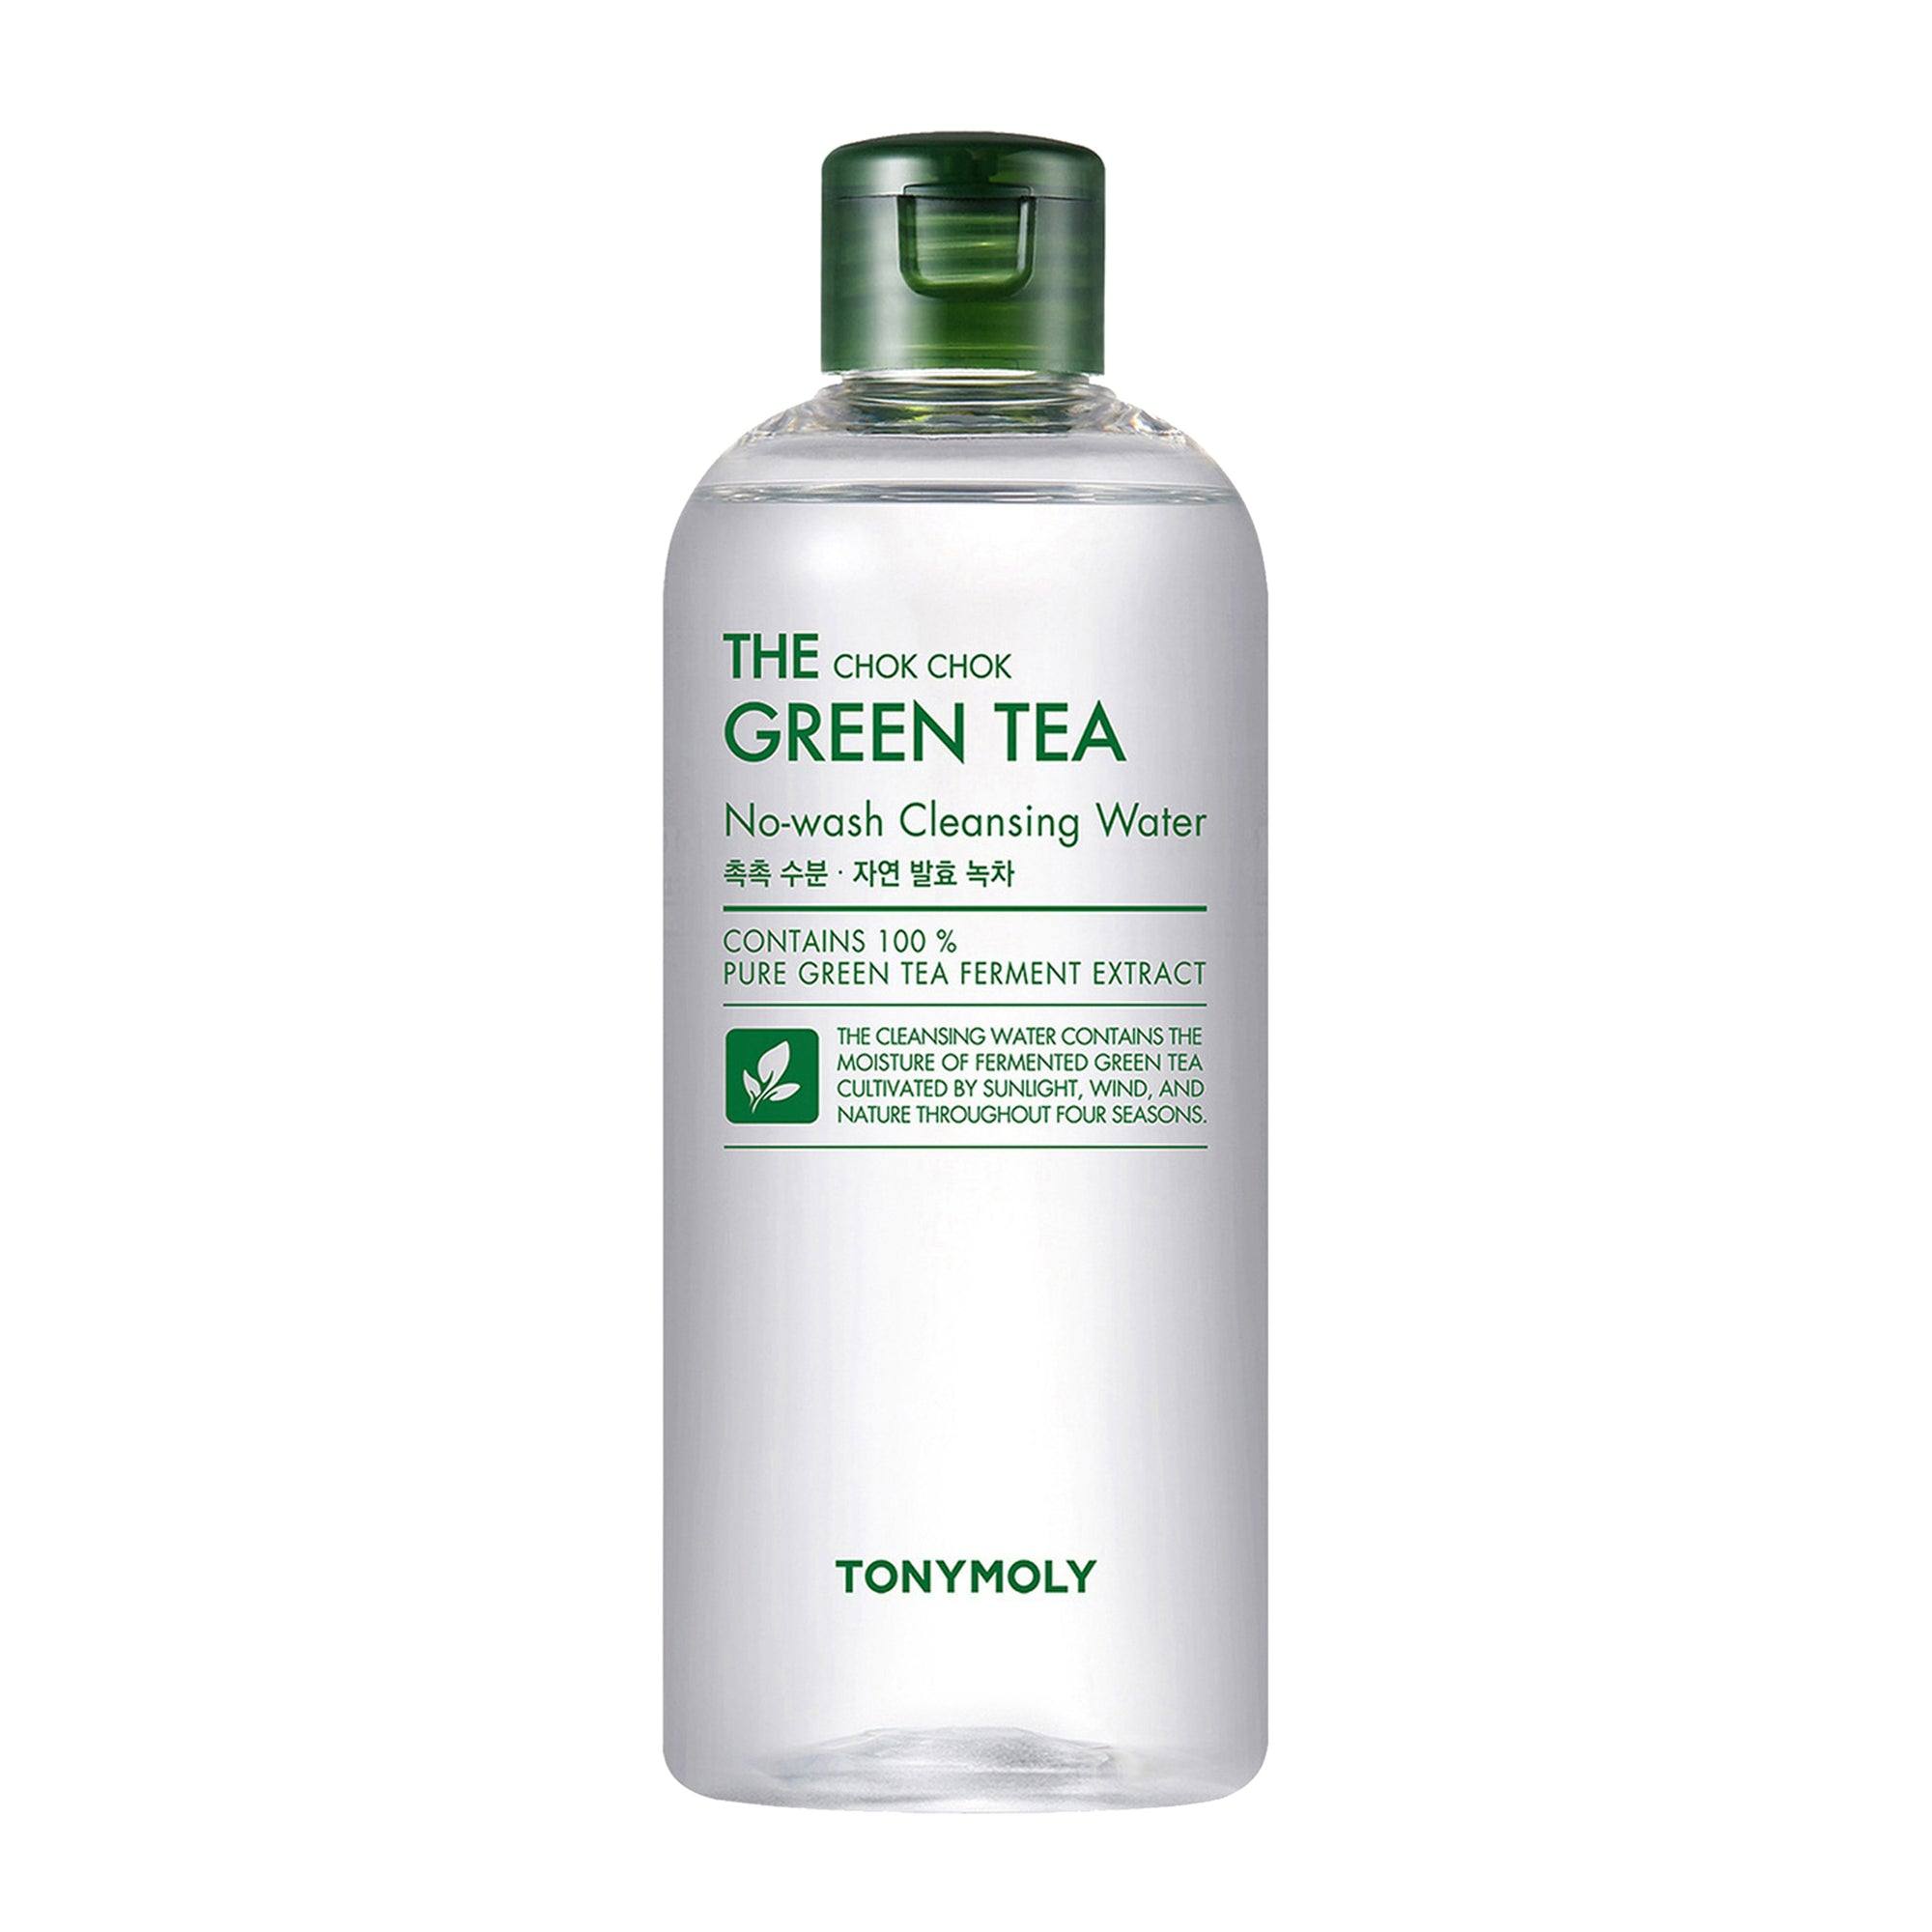 TONYMOLY The Chok Chok Green Tea No Wash Cleansing Water 300ml | Korean Skin Care